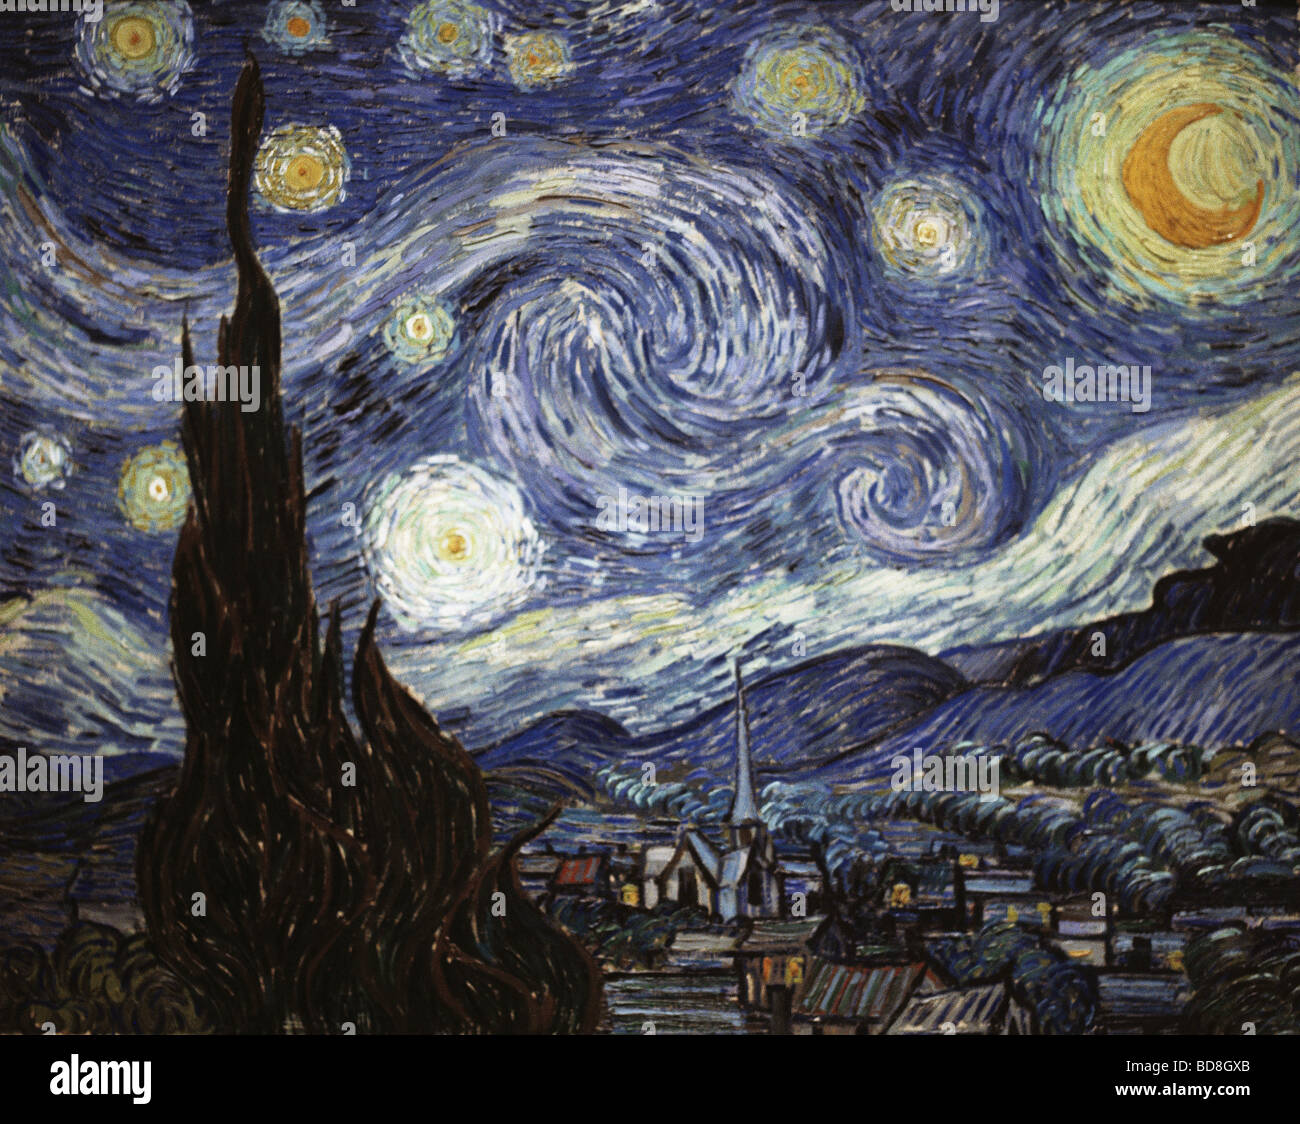 """fine arts, Gogh, Vincent van, (1853 - 1890), painting, """"The Starry Night"""", oil on canvas, 73 x 92 cm, 1889, National Stock Photo"""